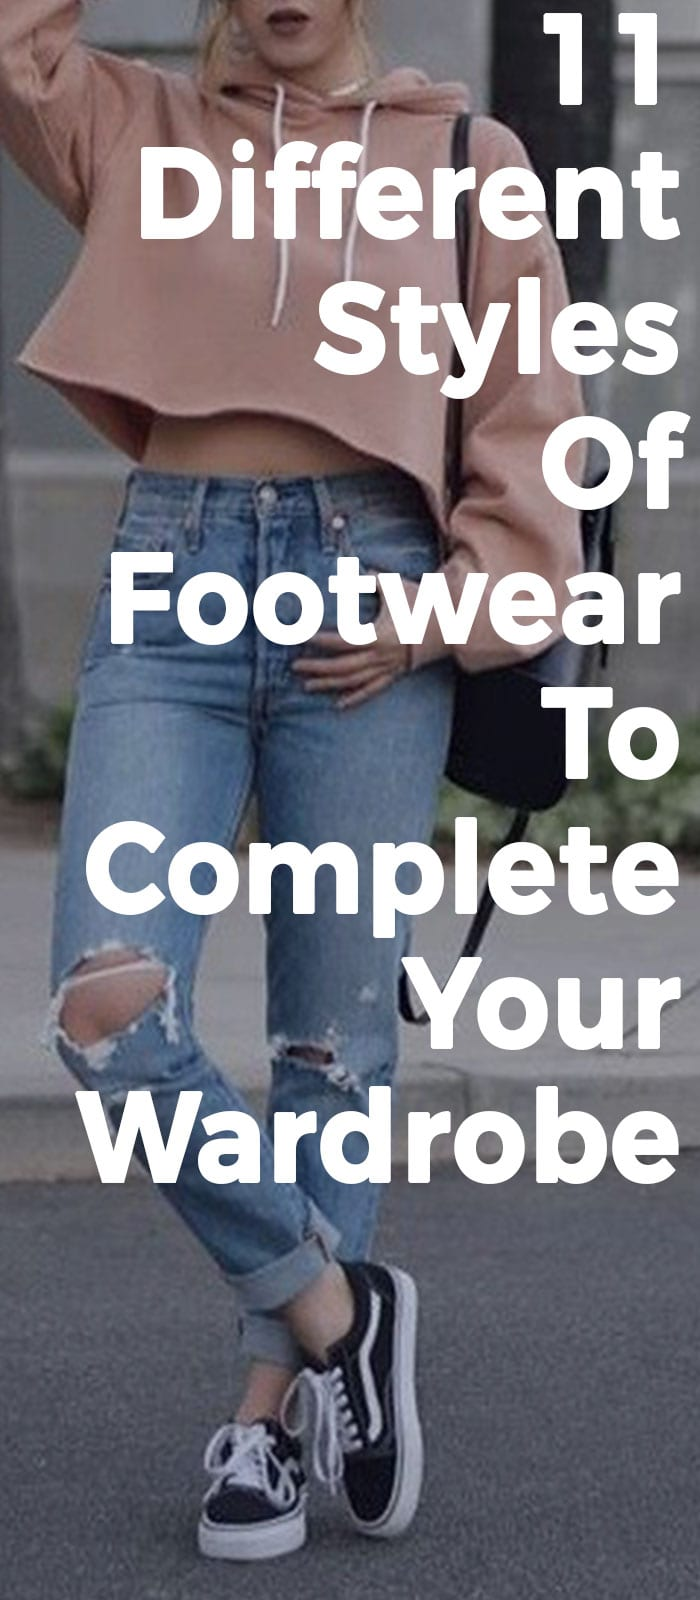 11 Different Styles Of Footwear To Complete Your Wardrobe!